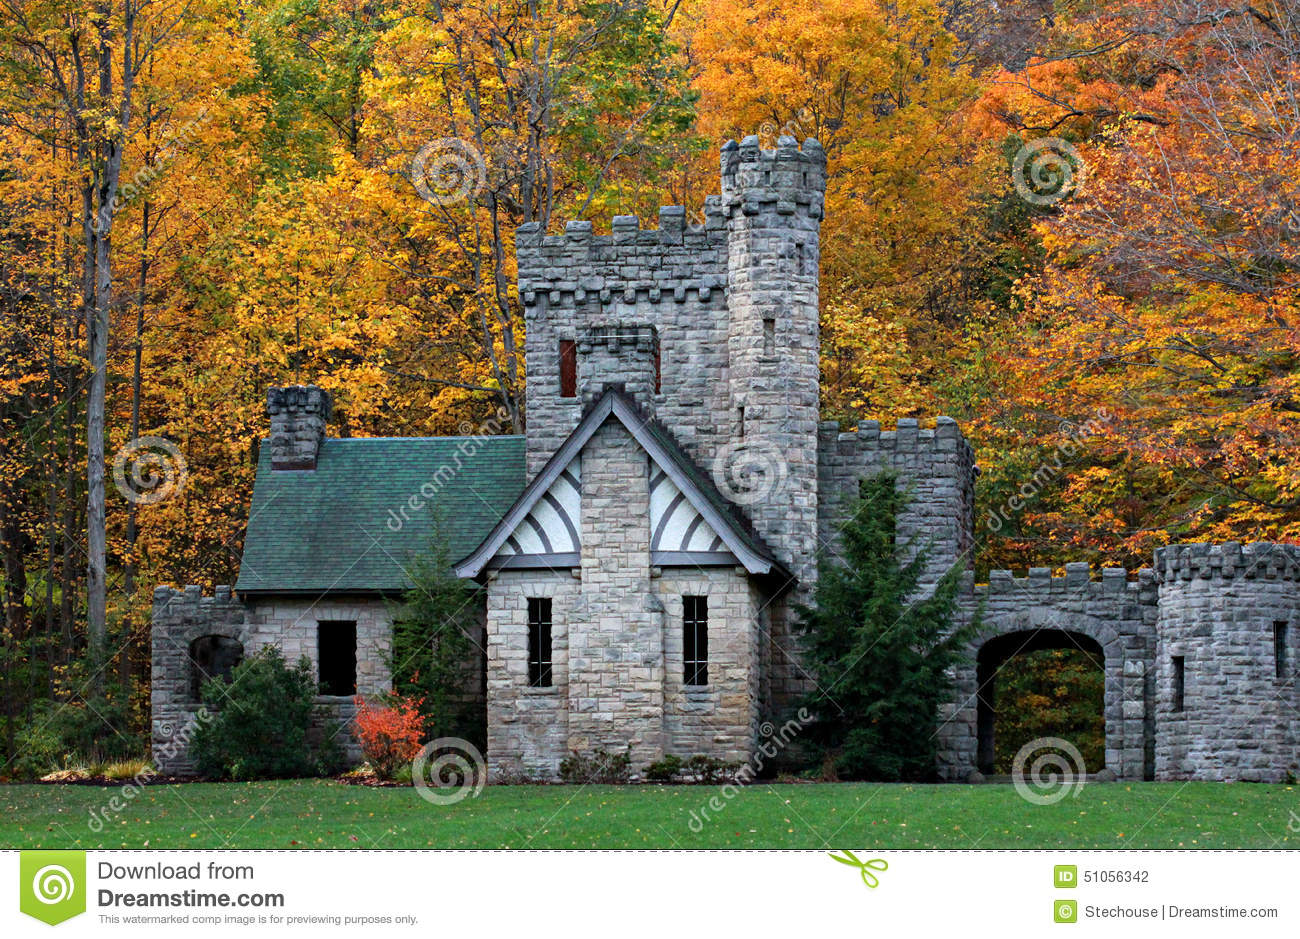 squire u0026 39 s castle  cleveland metroparks  chagrin reservation  ohio stock photo